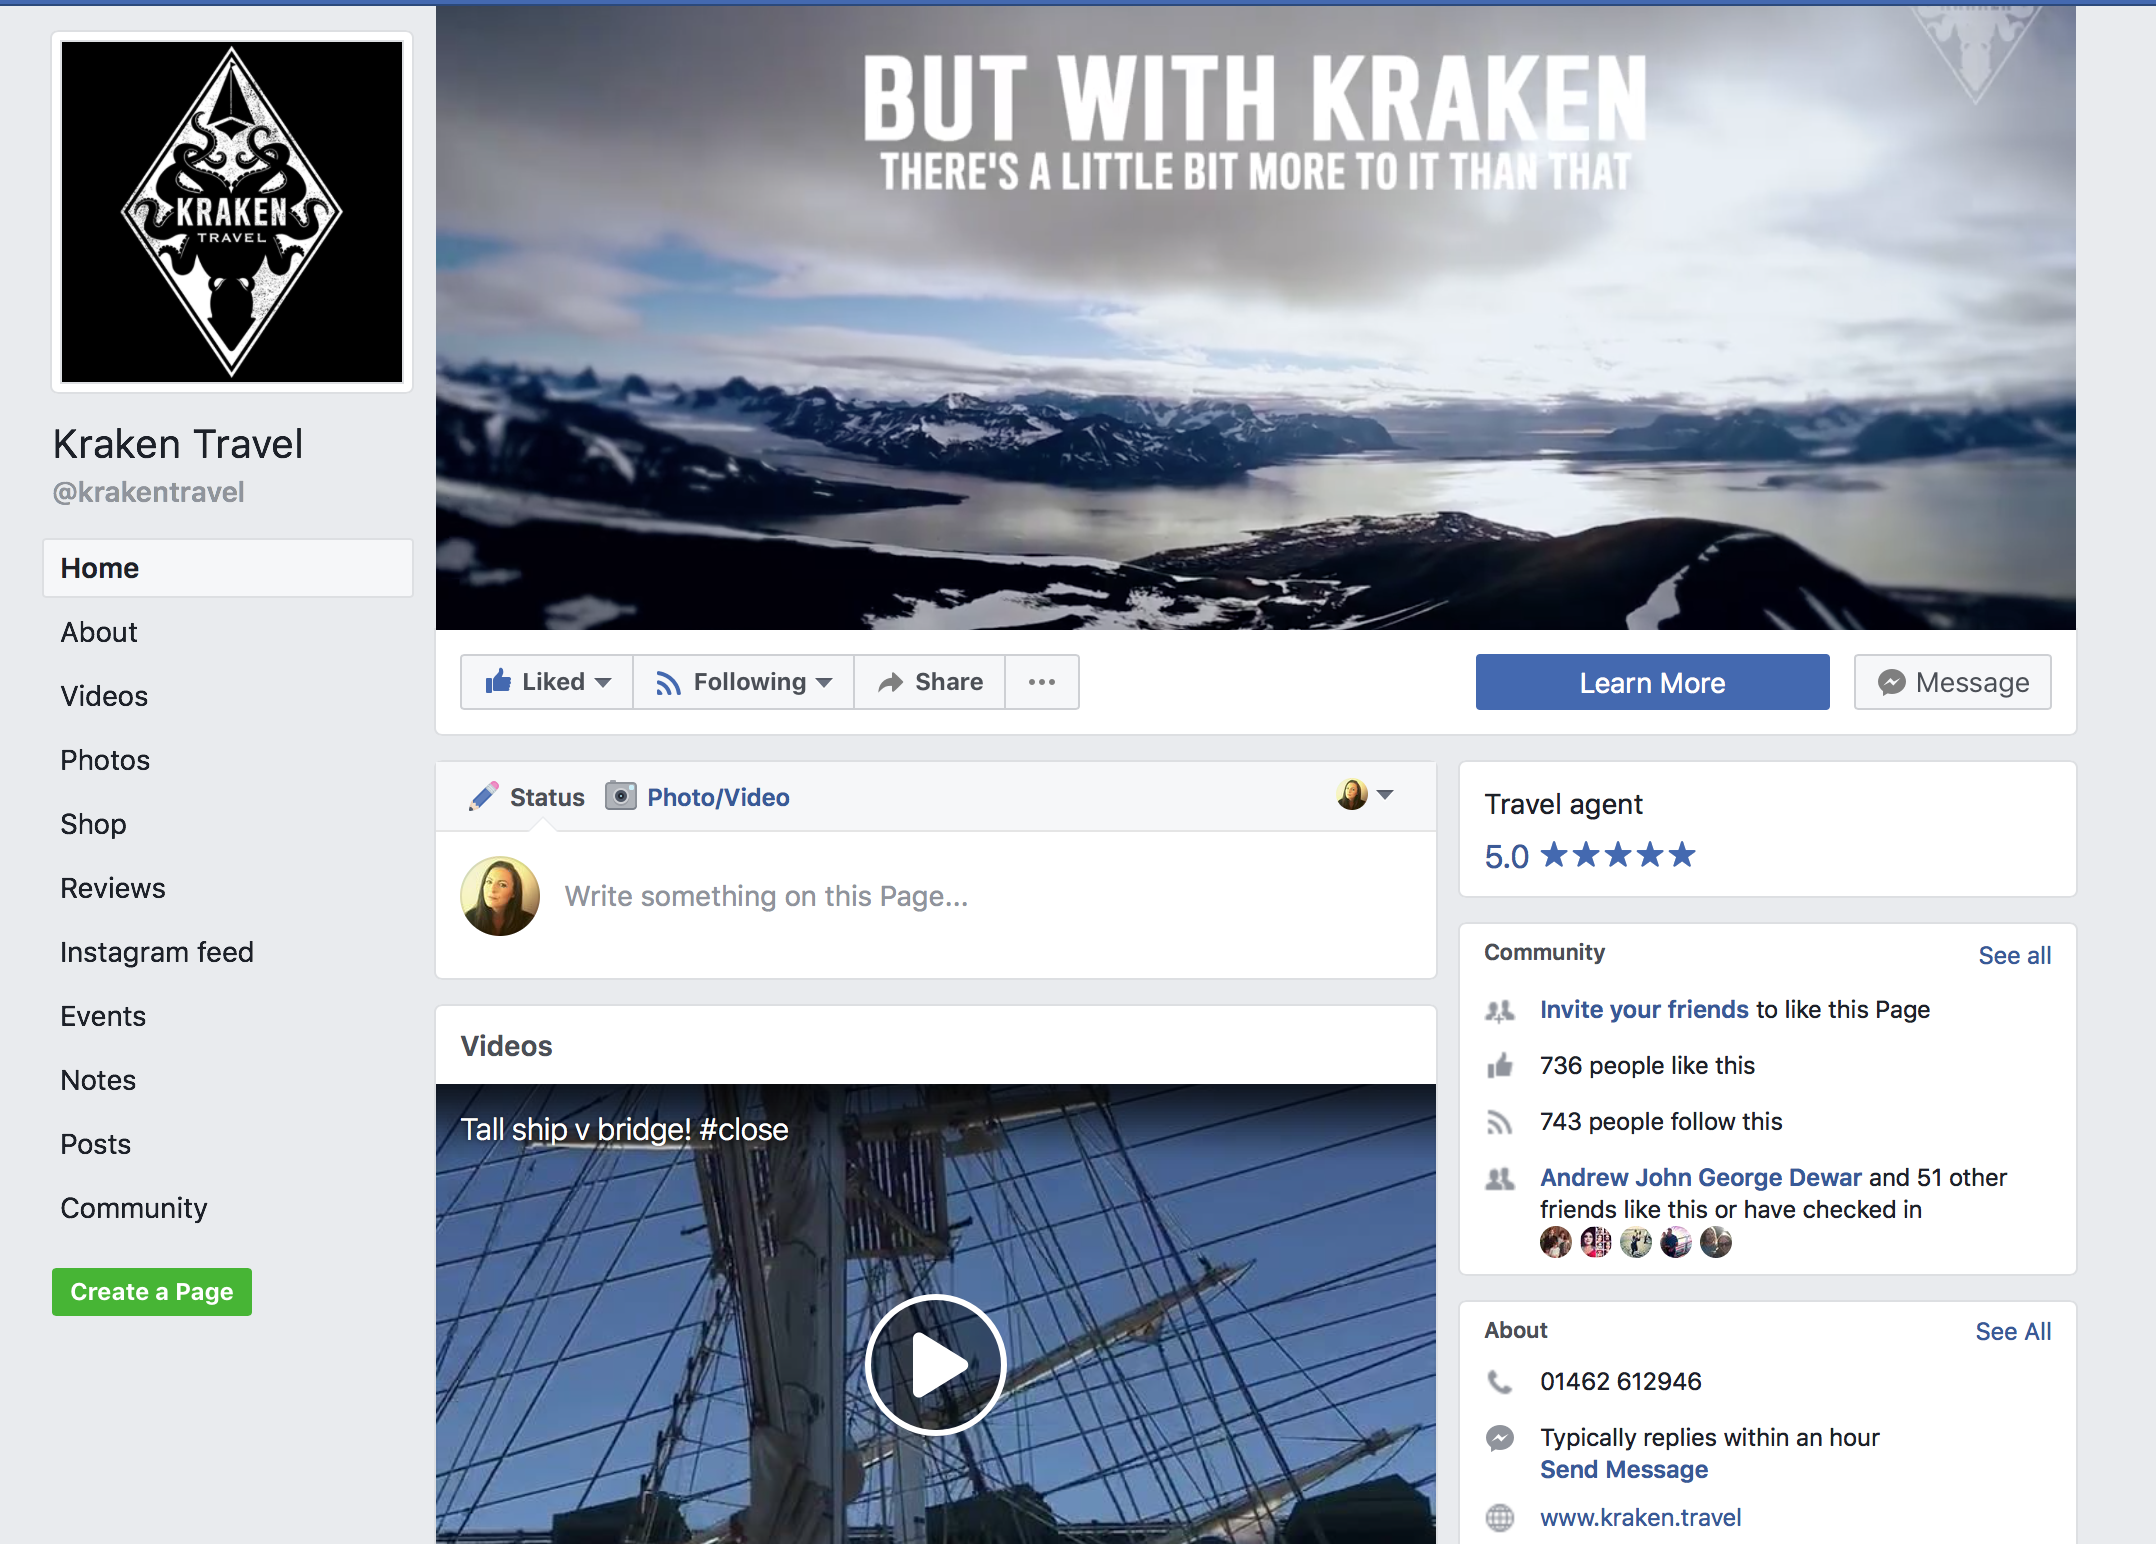 Kraken Travel on Facebook